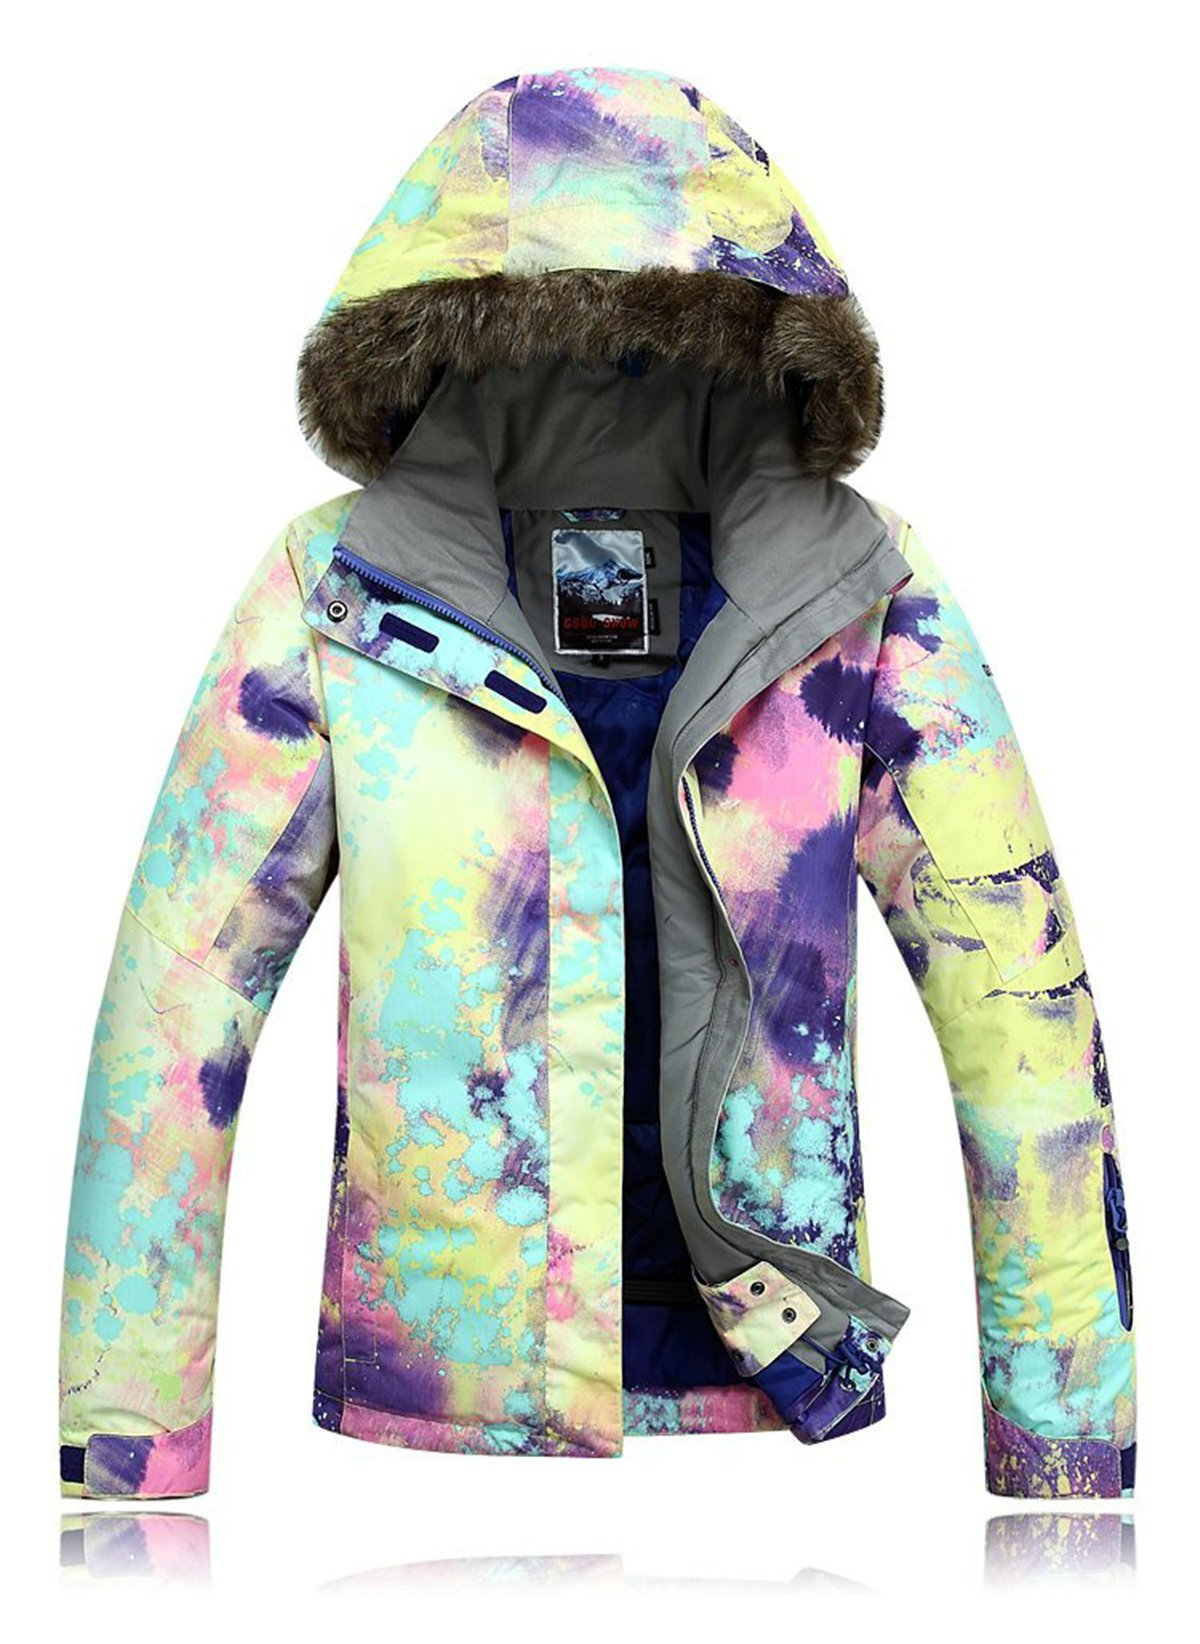 APTRO Women's High Windproof Technology Colorfull Printed Ski Jacket Style #21 Size M